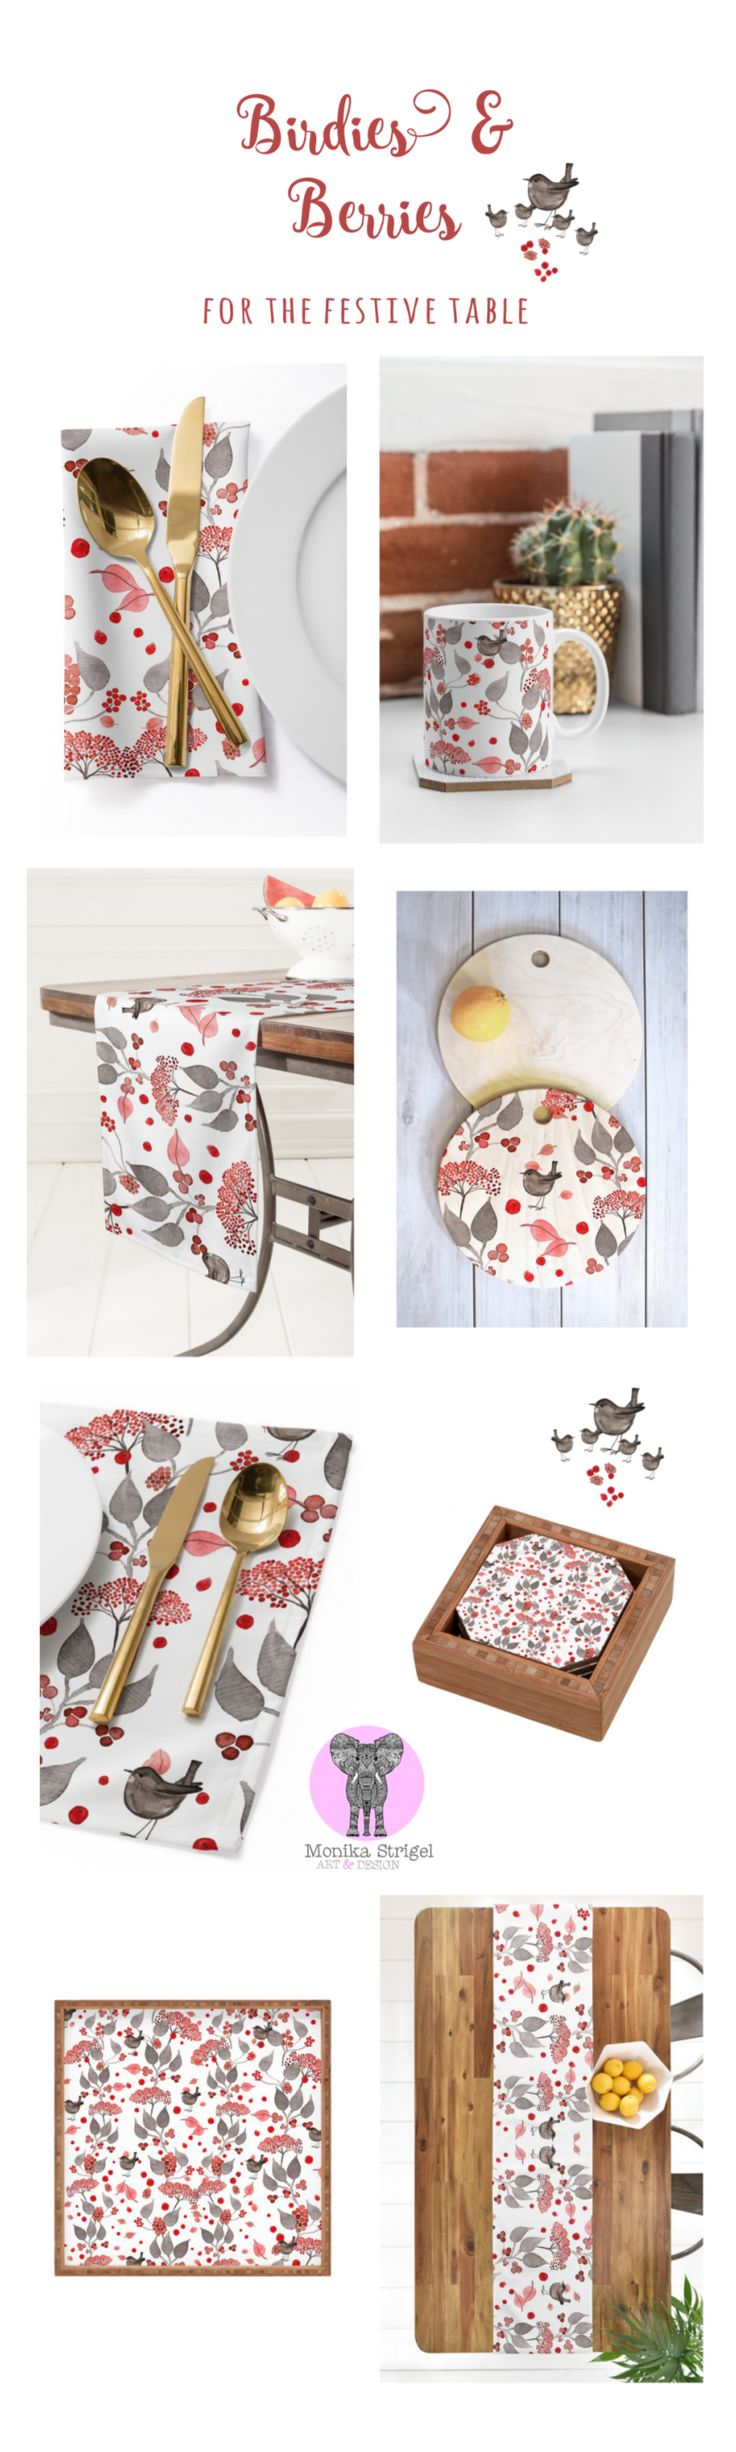 Napkins, tablerunner, coasters and more! Everything you need for your wonderful festive table with BIRDIES & BERRIES created by Monika Strigel and only on @denydesigns ! Starting at $15  #decoration #table #tablerunner #napkin #mug #tablecloth, placemat, cuttinboard, bird, birds, cute, red, berries, grey, watercolor, watercolorart, artistic, cute, fall, winter, nordic, scandi, scandidesign, design, monikastrigel